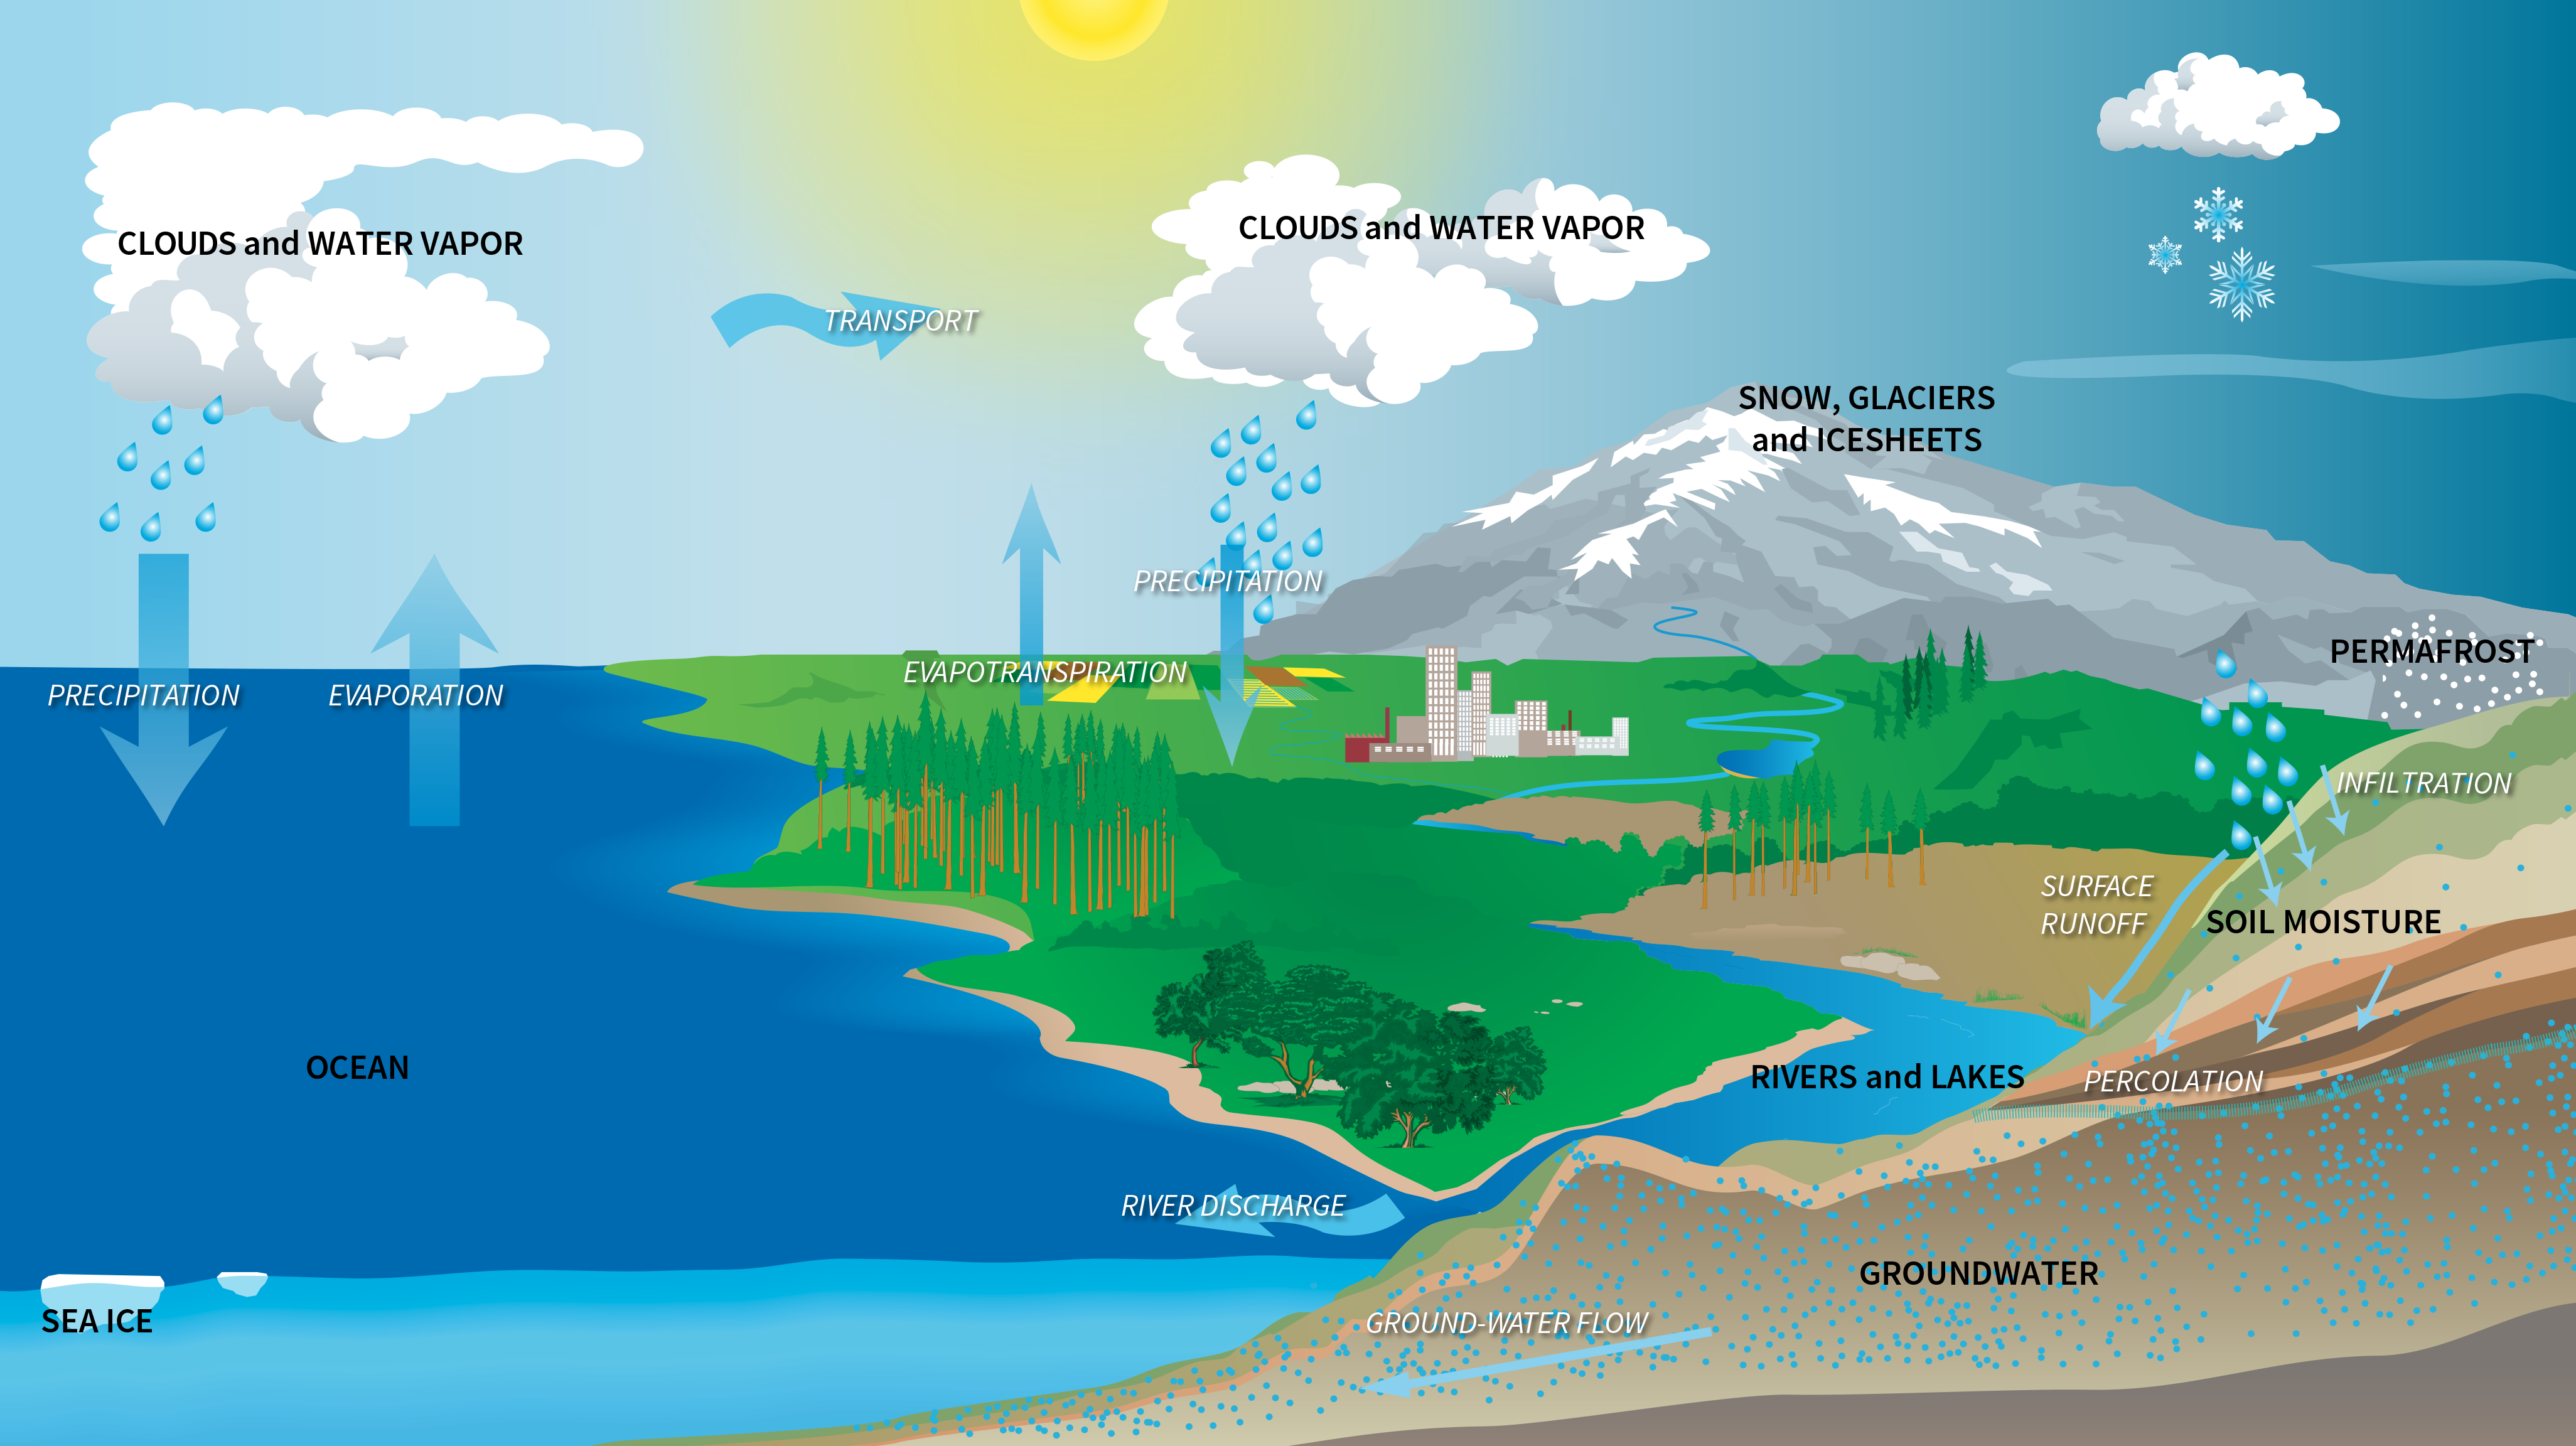 Hyperwall: The Water Cycle